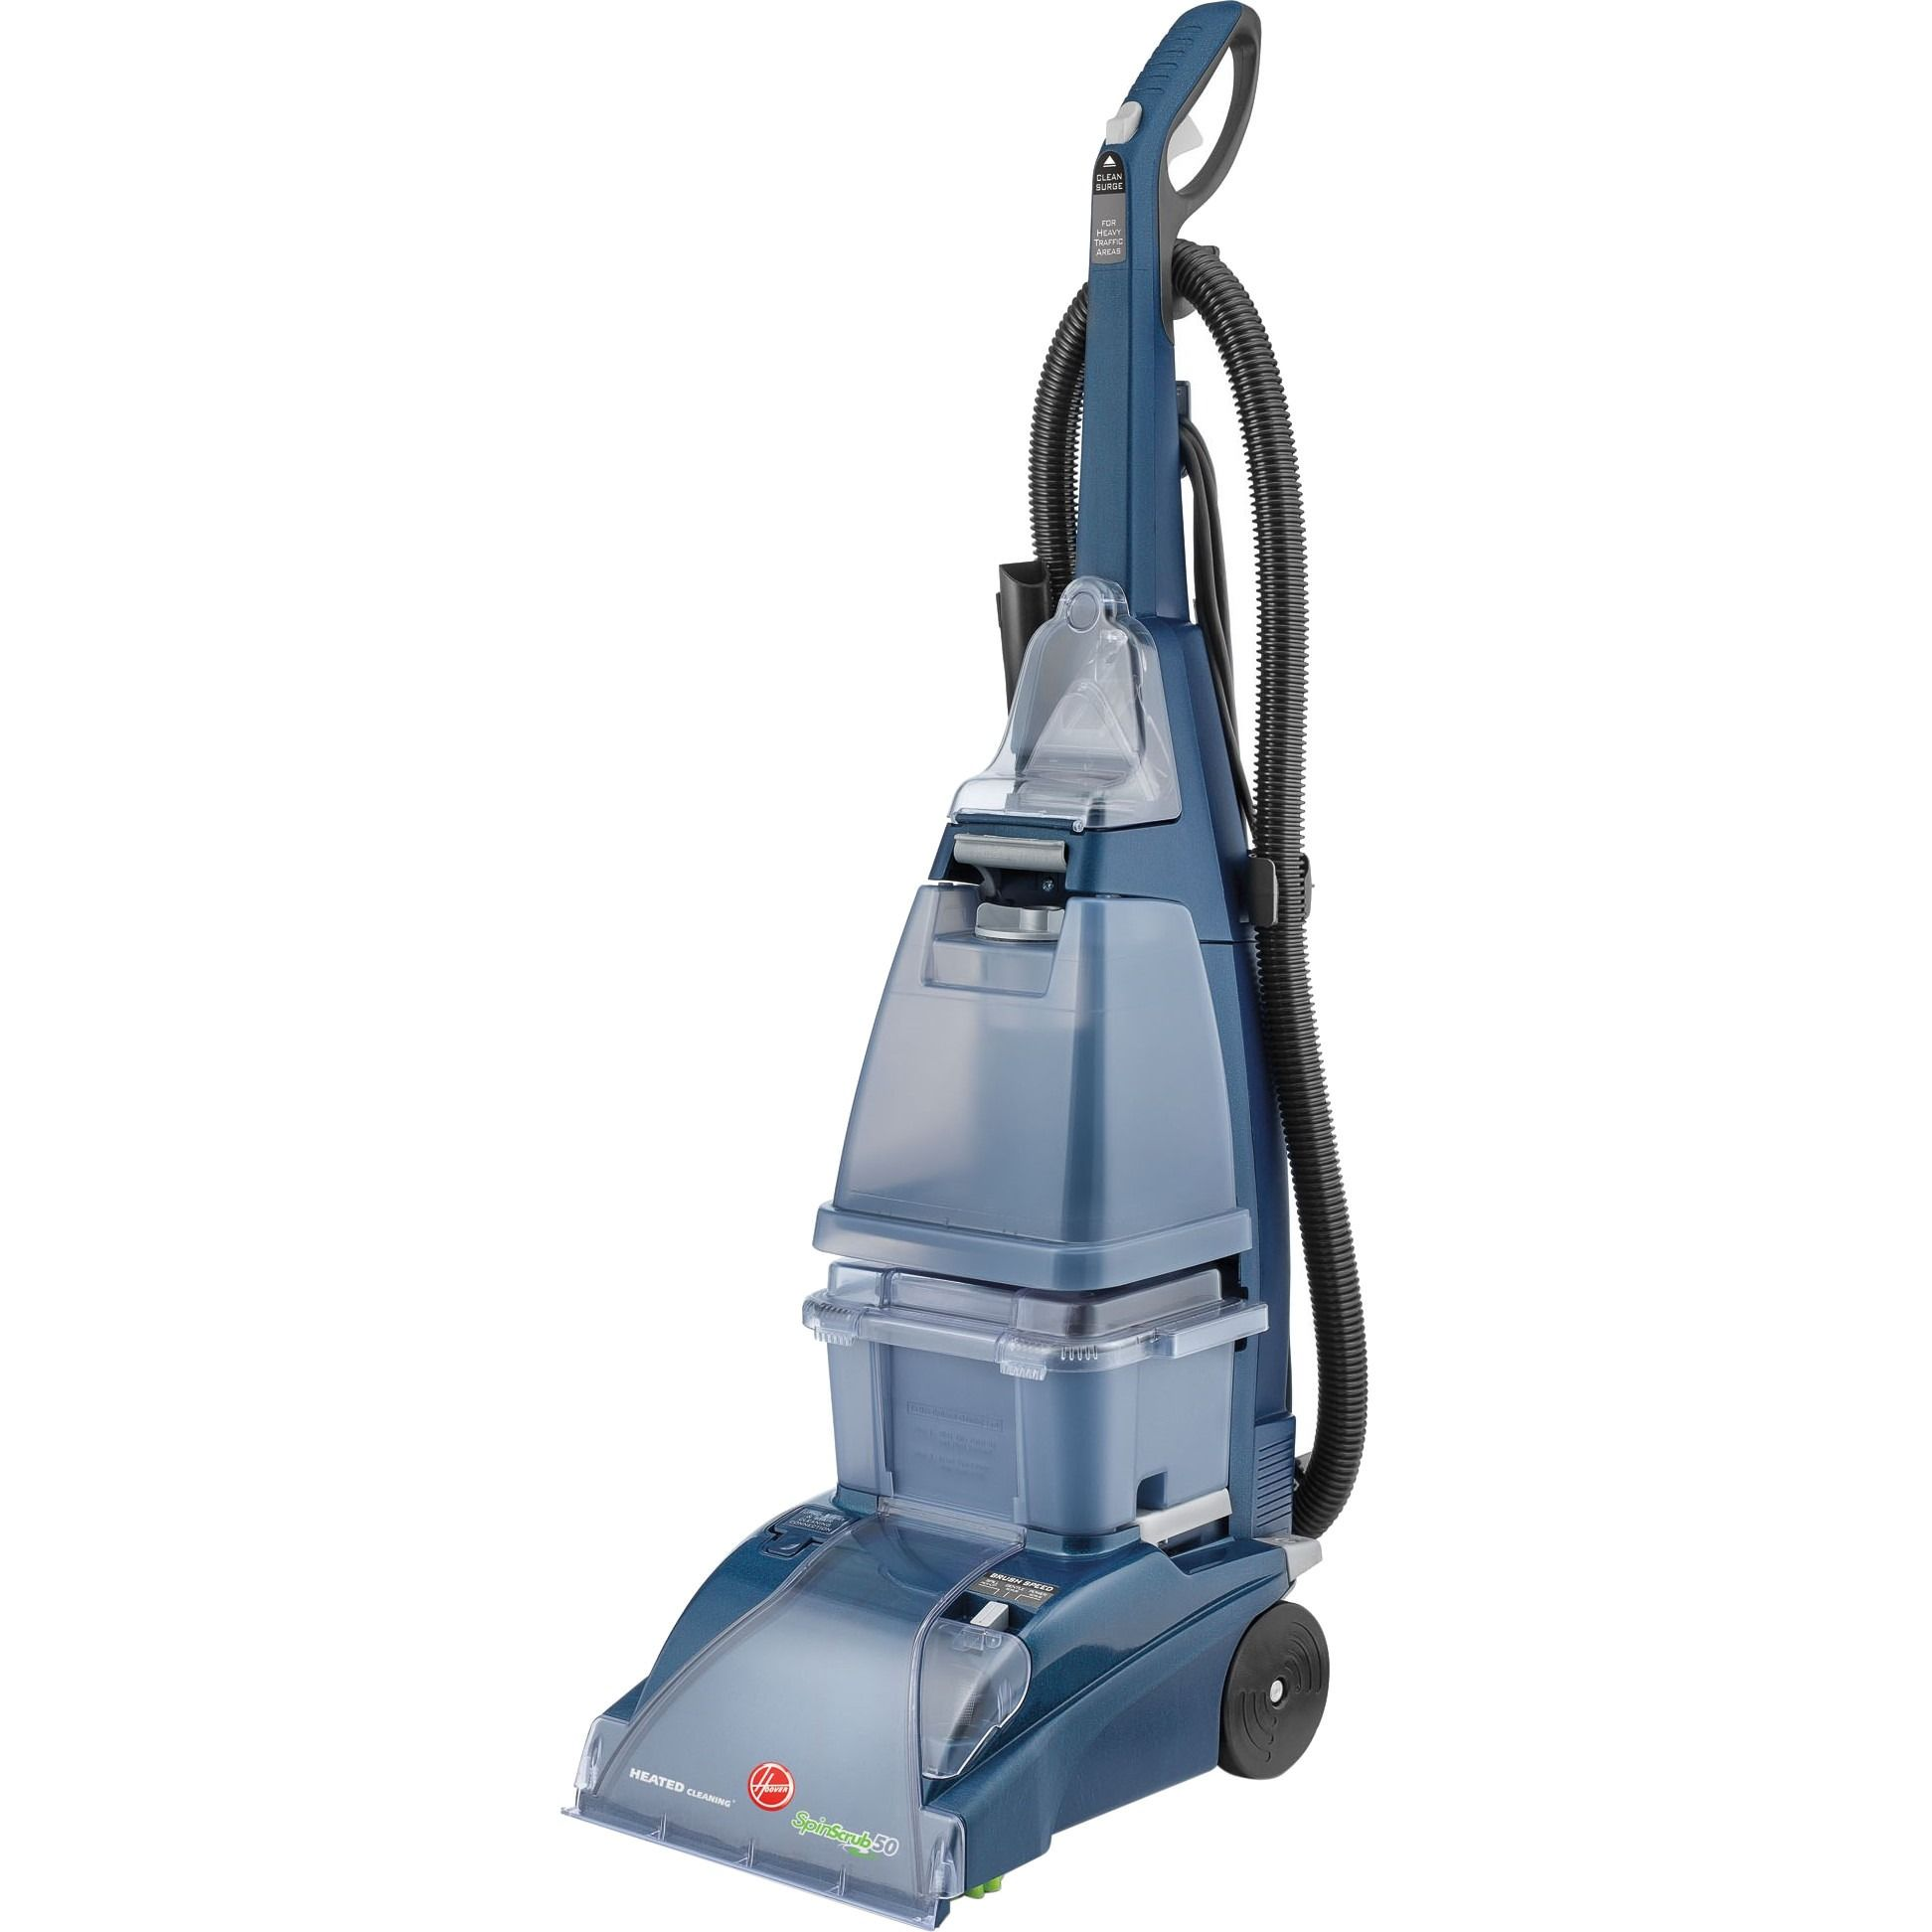 Hoover Carpet Cleaner Spinscrub 50 Brushes Won T Spin In 2020 How To Clean Carpet Carpet Cleaning Hacks Cleaning Upholstery